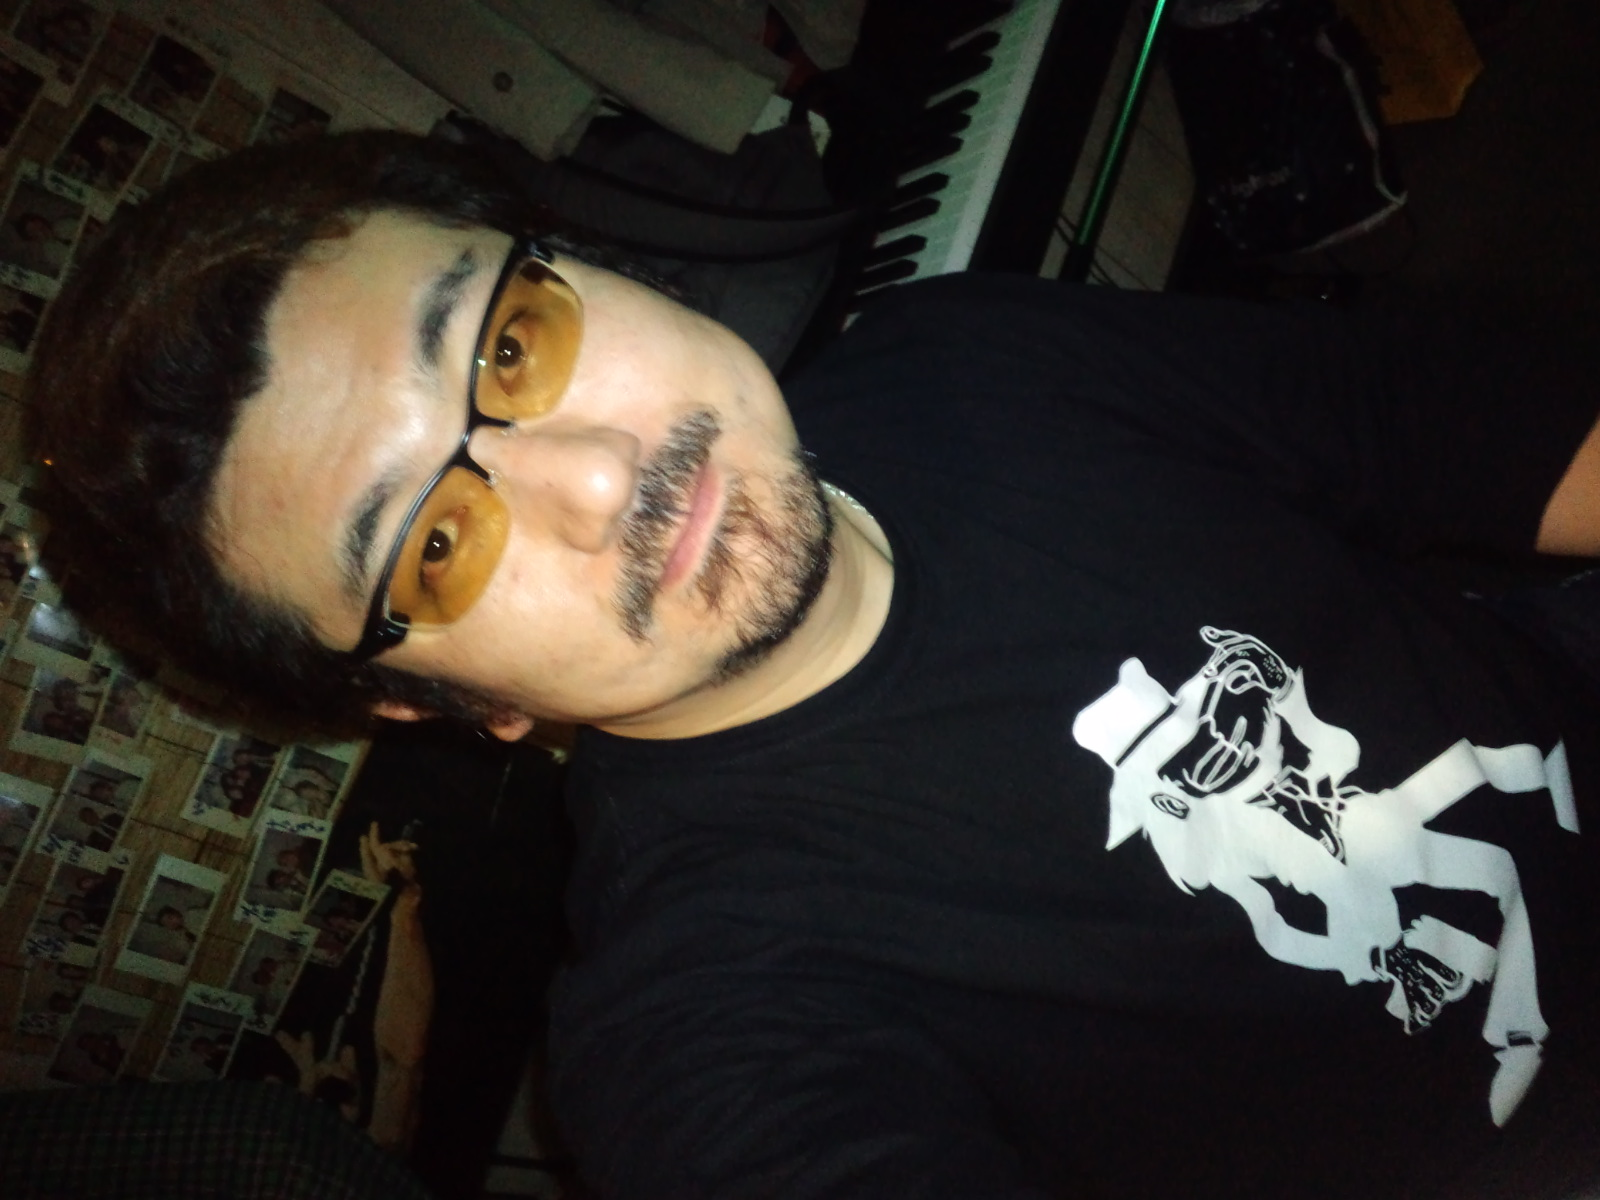 Happy birthday to me(爆)